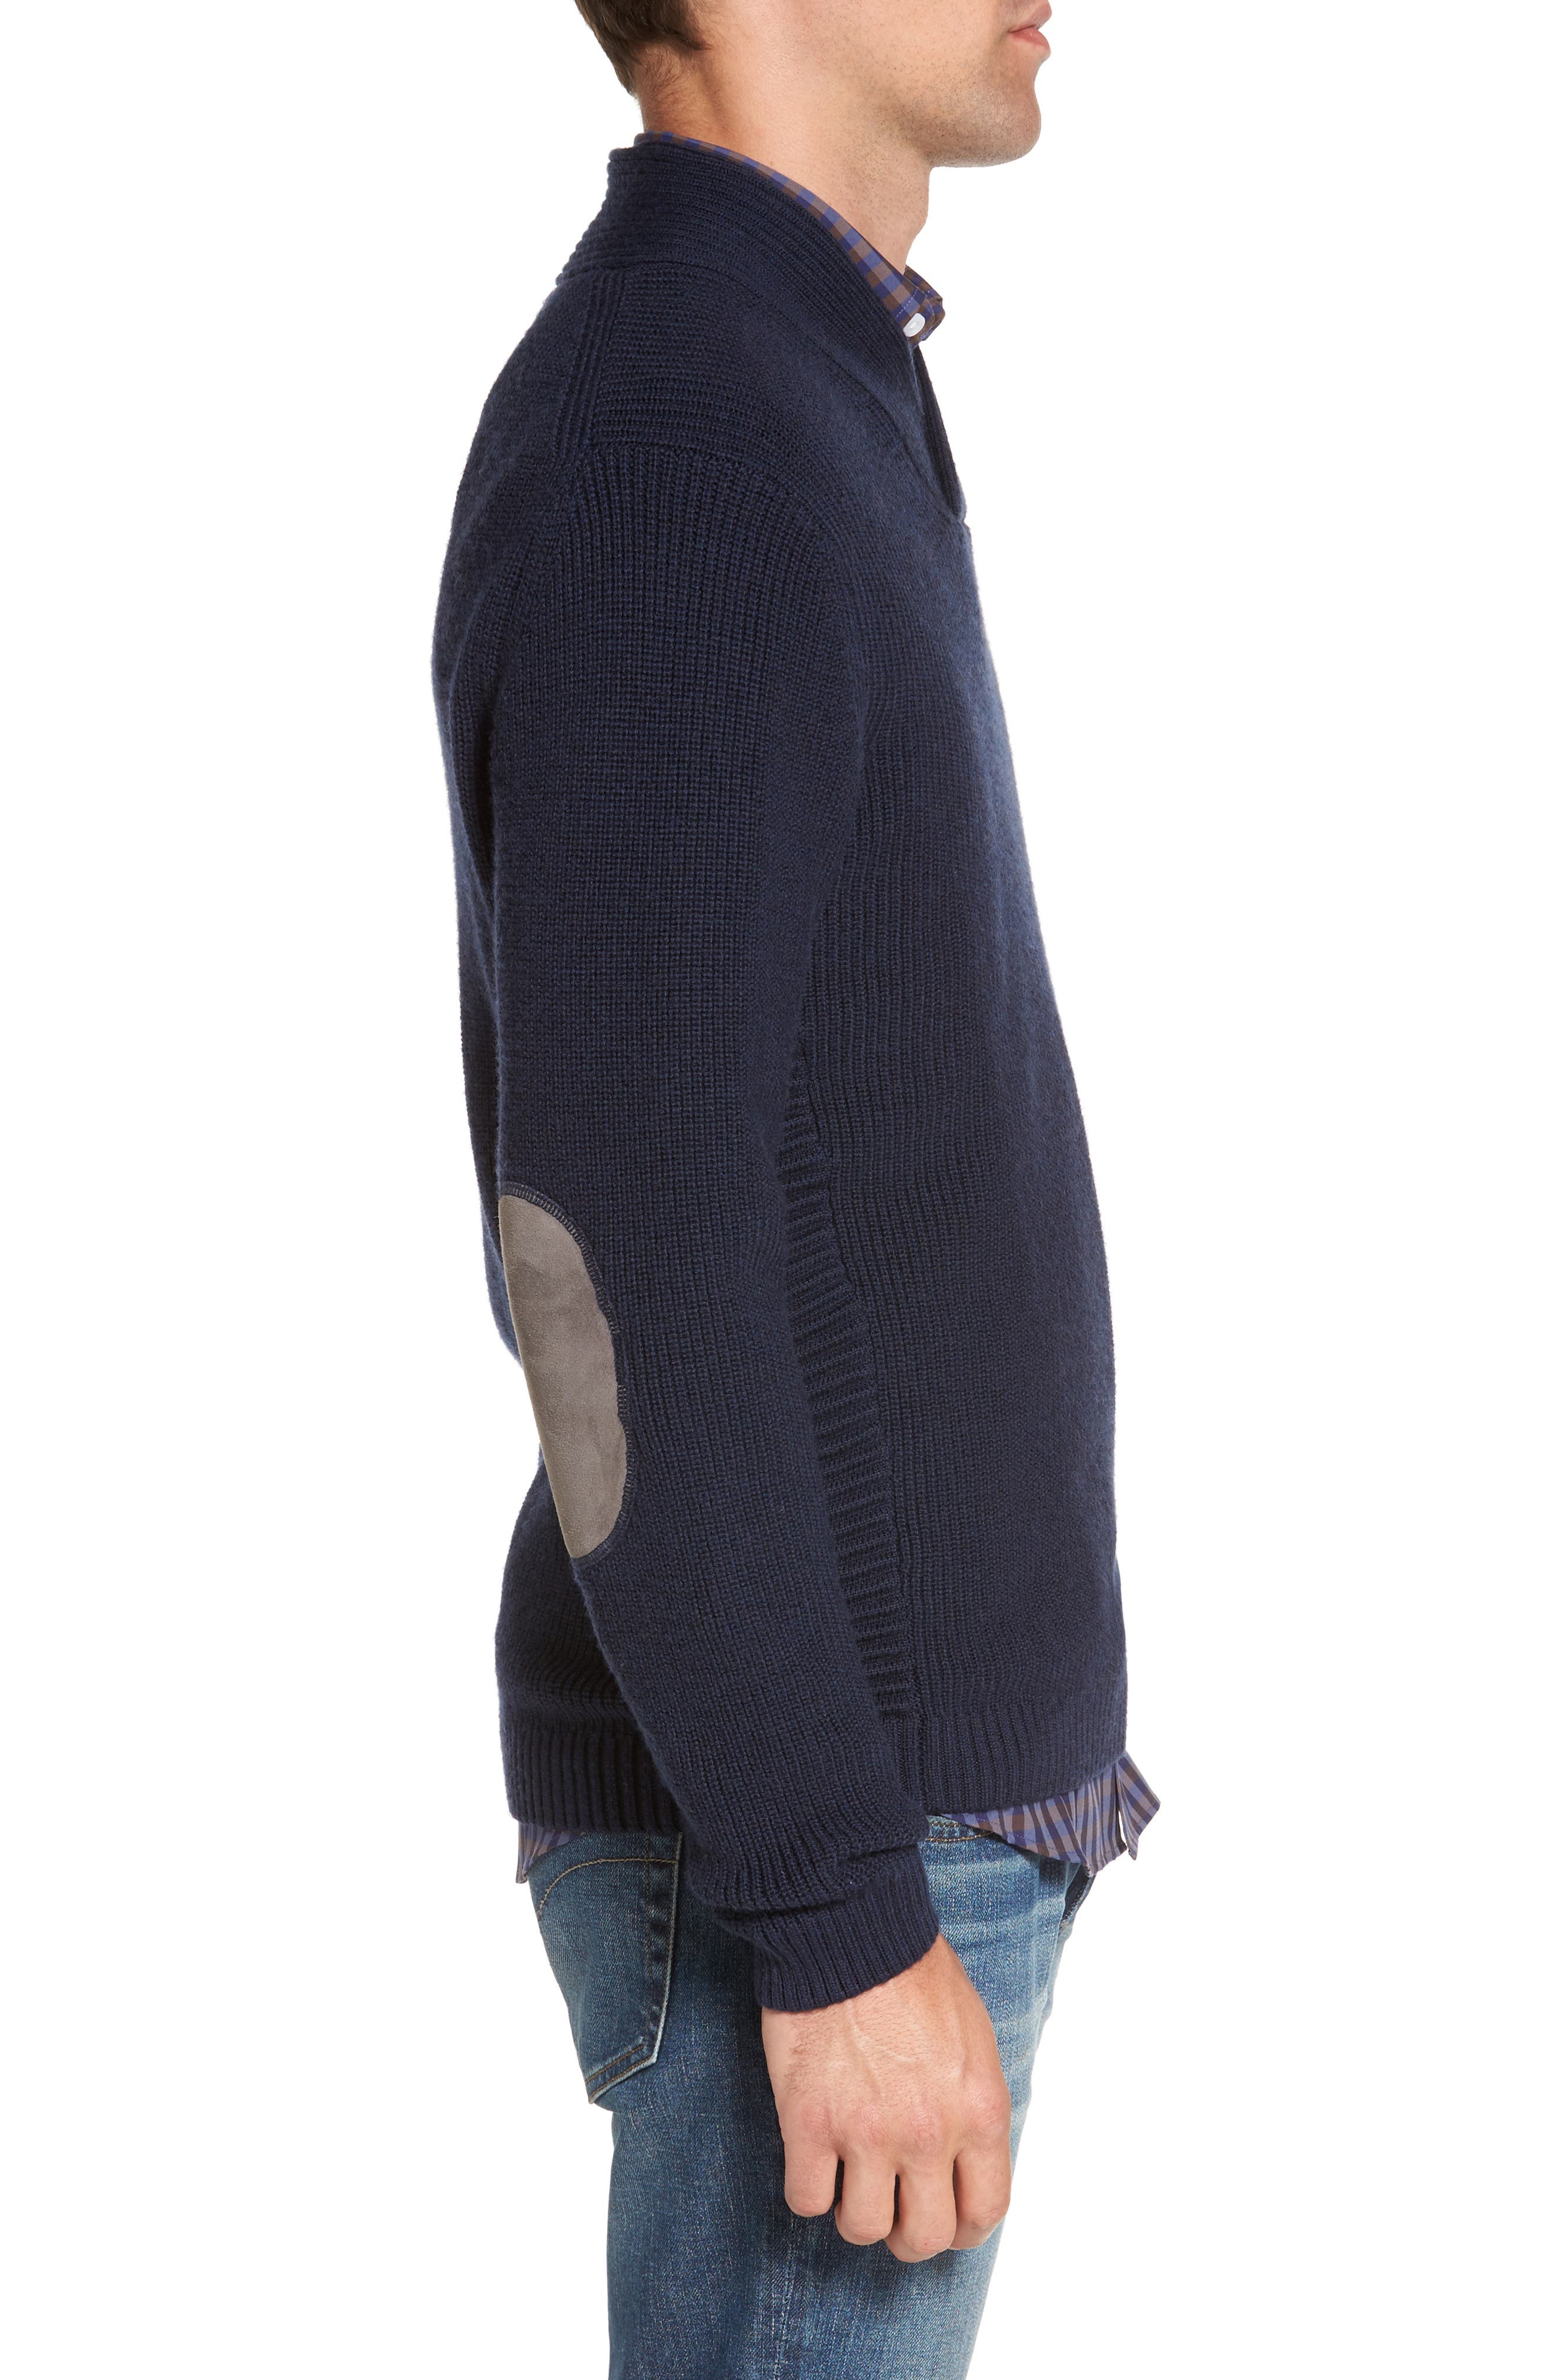 Charlesworth Suede Patch Merino Wool Sweater,                             Alternate thumbnail 3, color,                             432